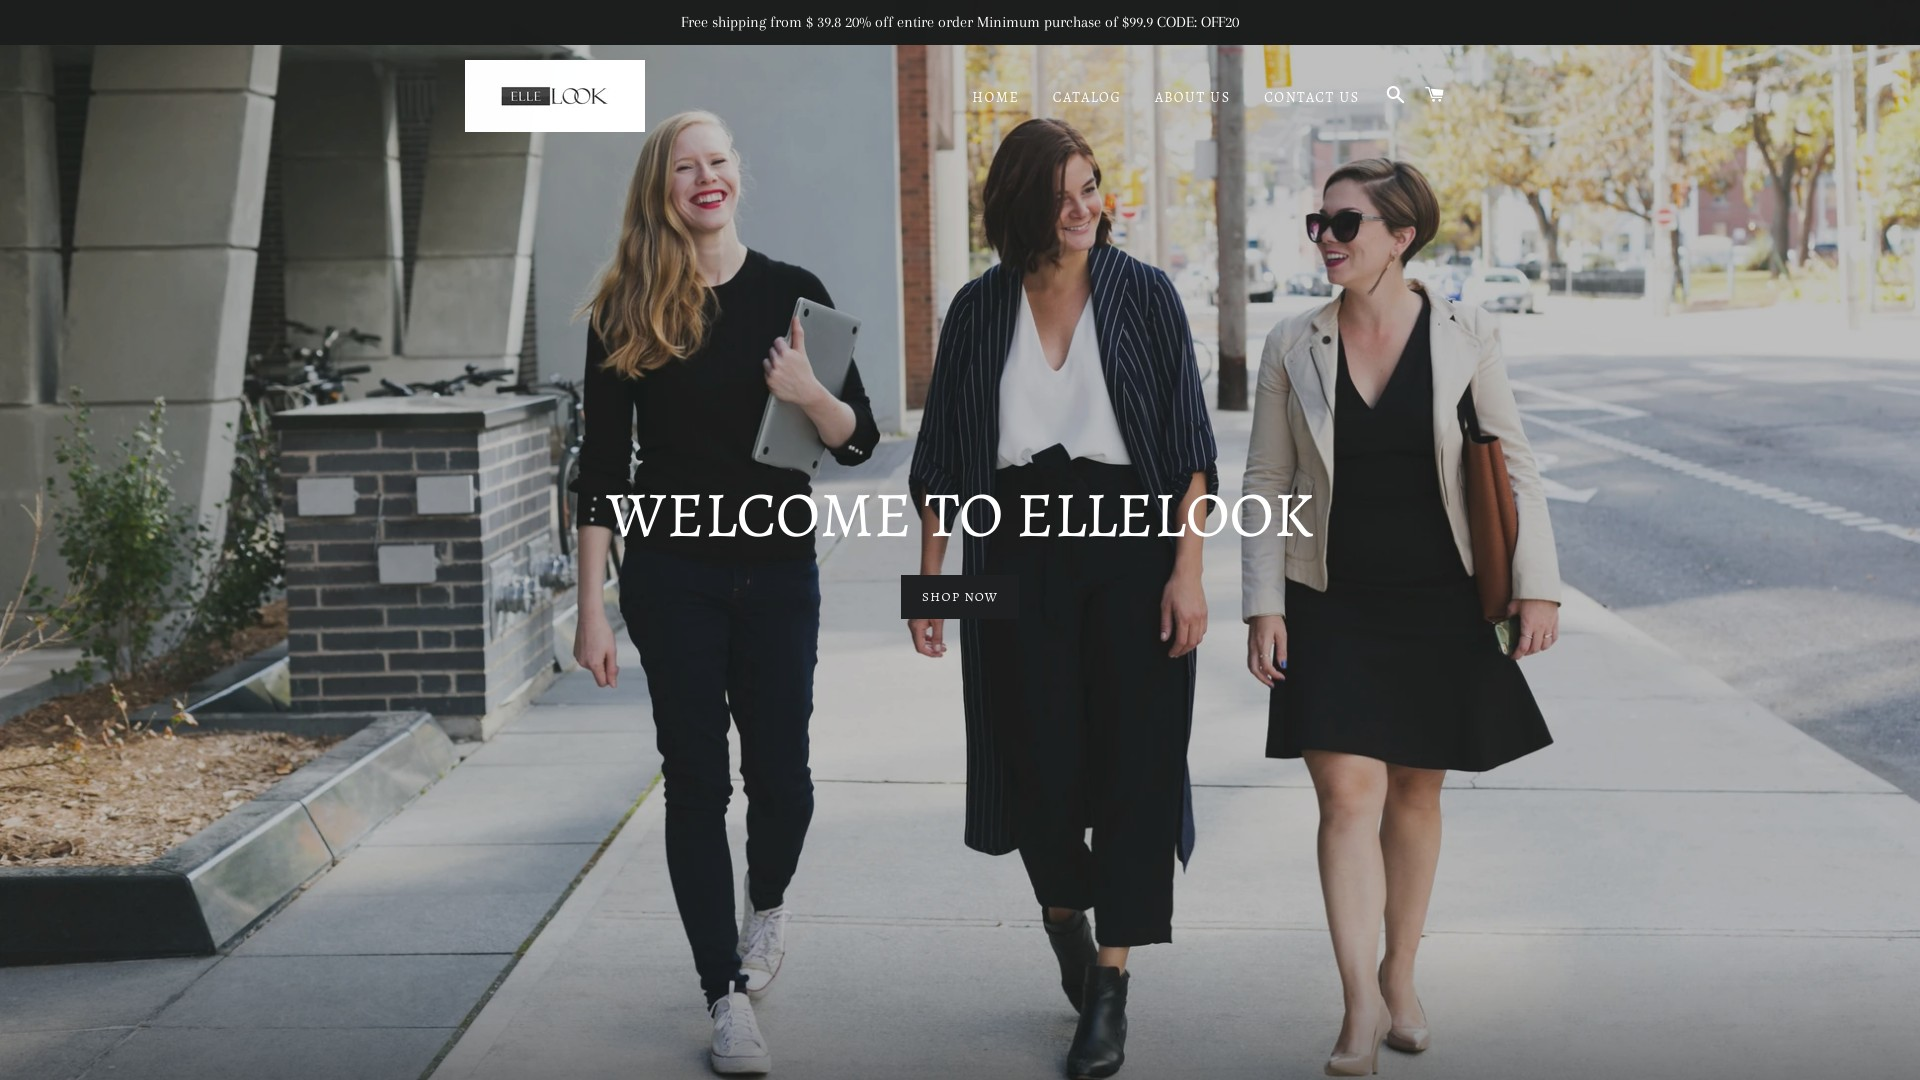 Is Ellelook a Scam? Review of the Online Store